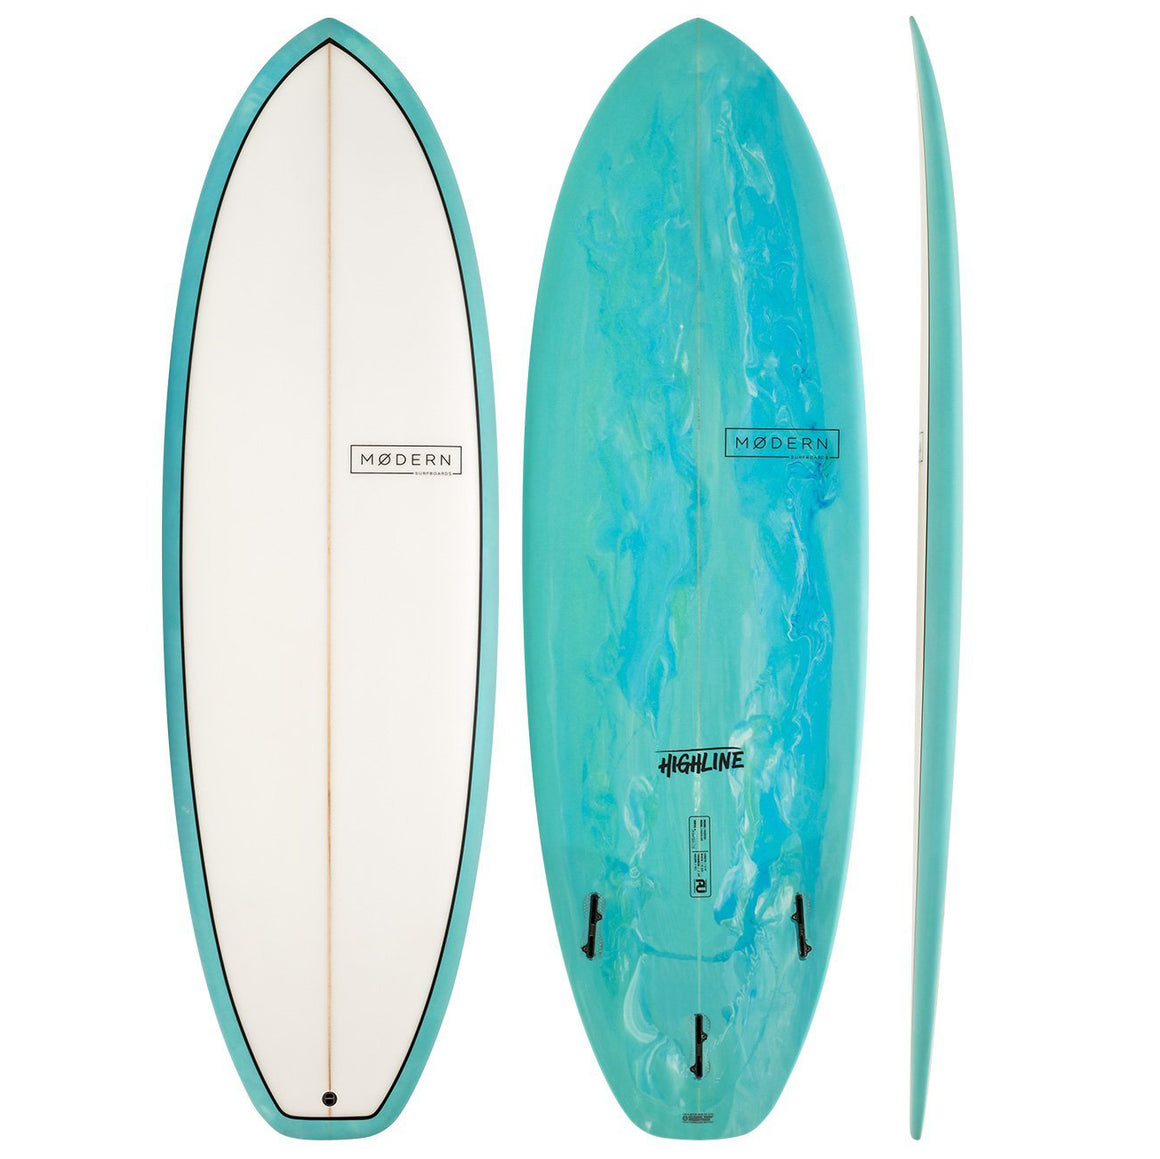 Modern Highline 6'8 PU Sea Tint